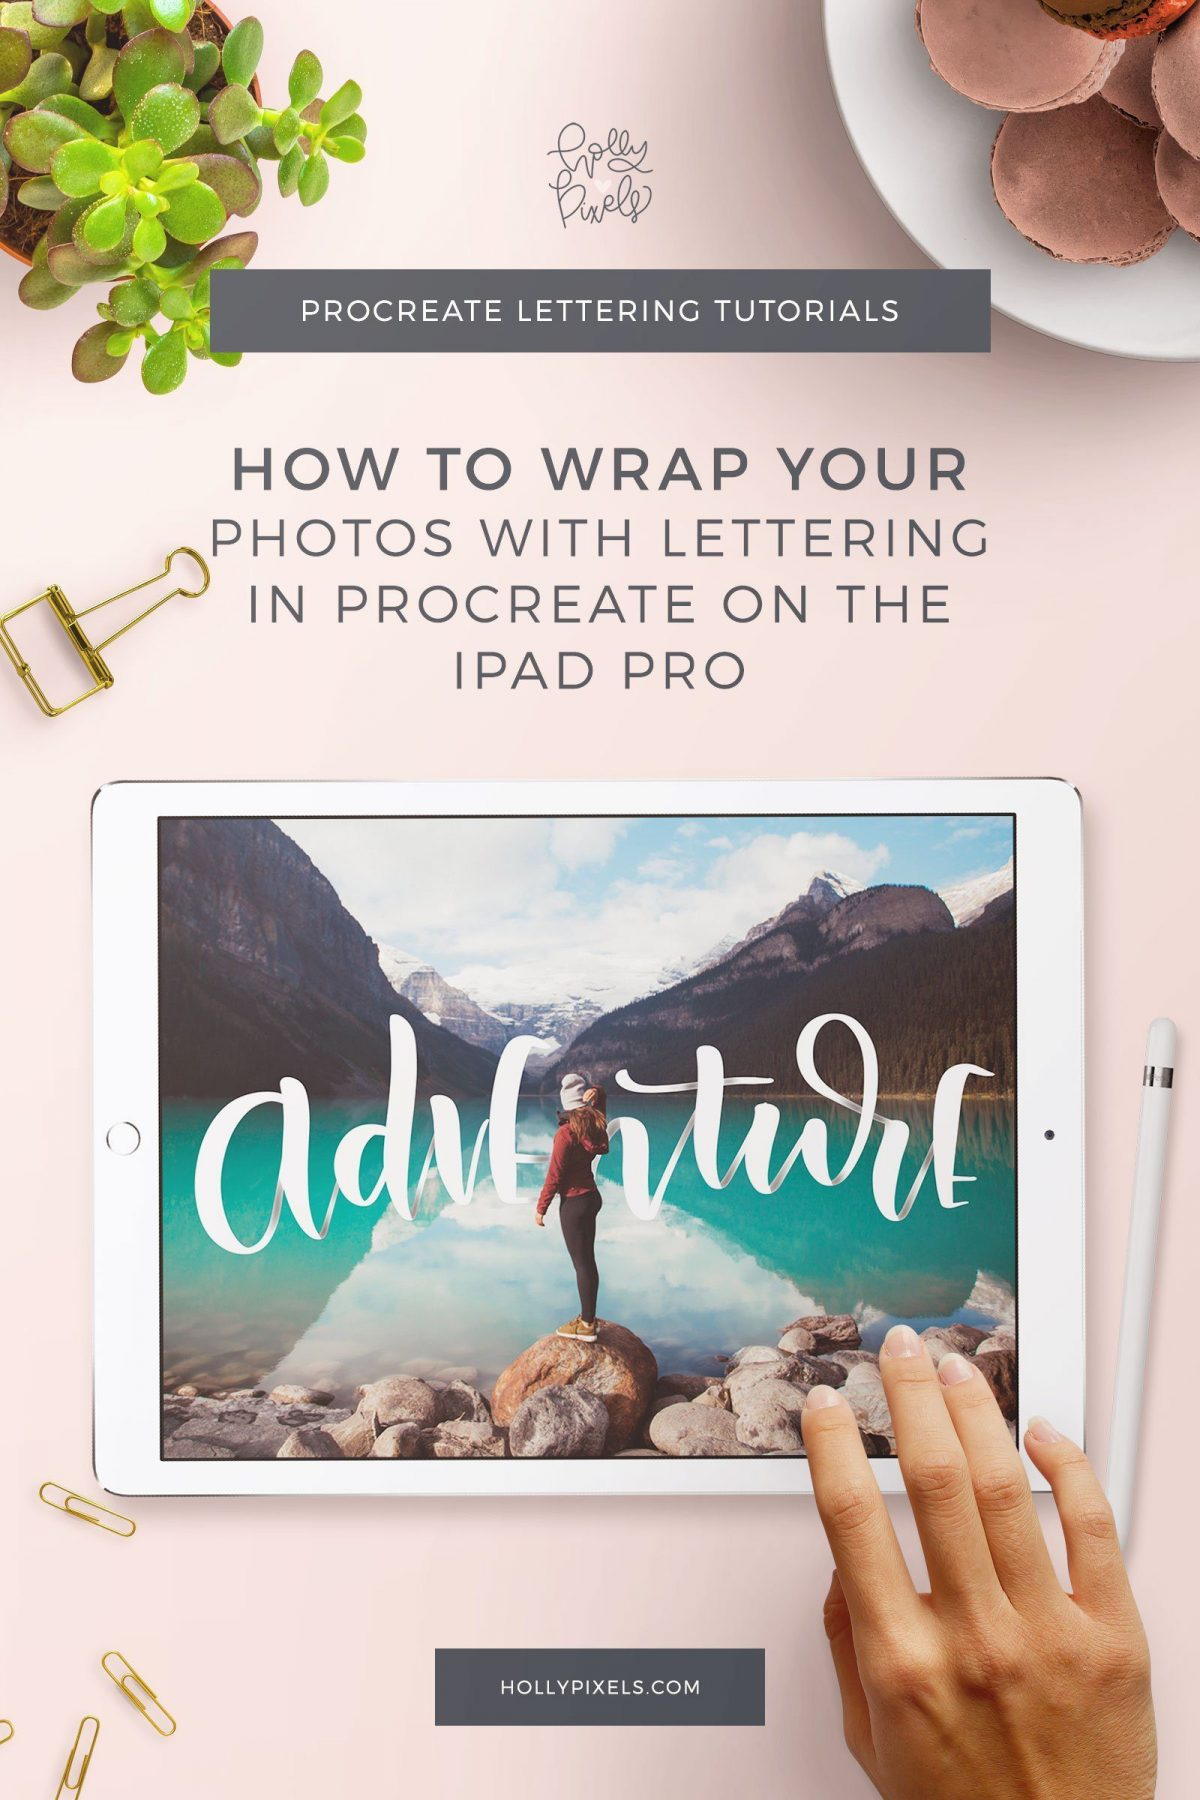 How to Wrap Photos with Letters | iPad Pro Lettering Tutorial with Procreate App